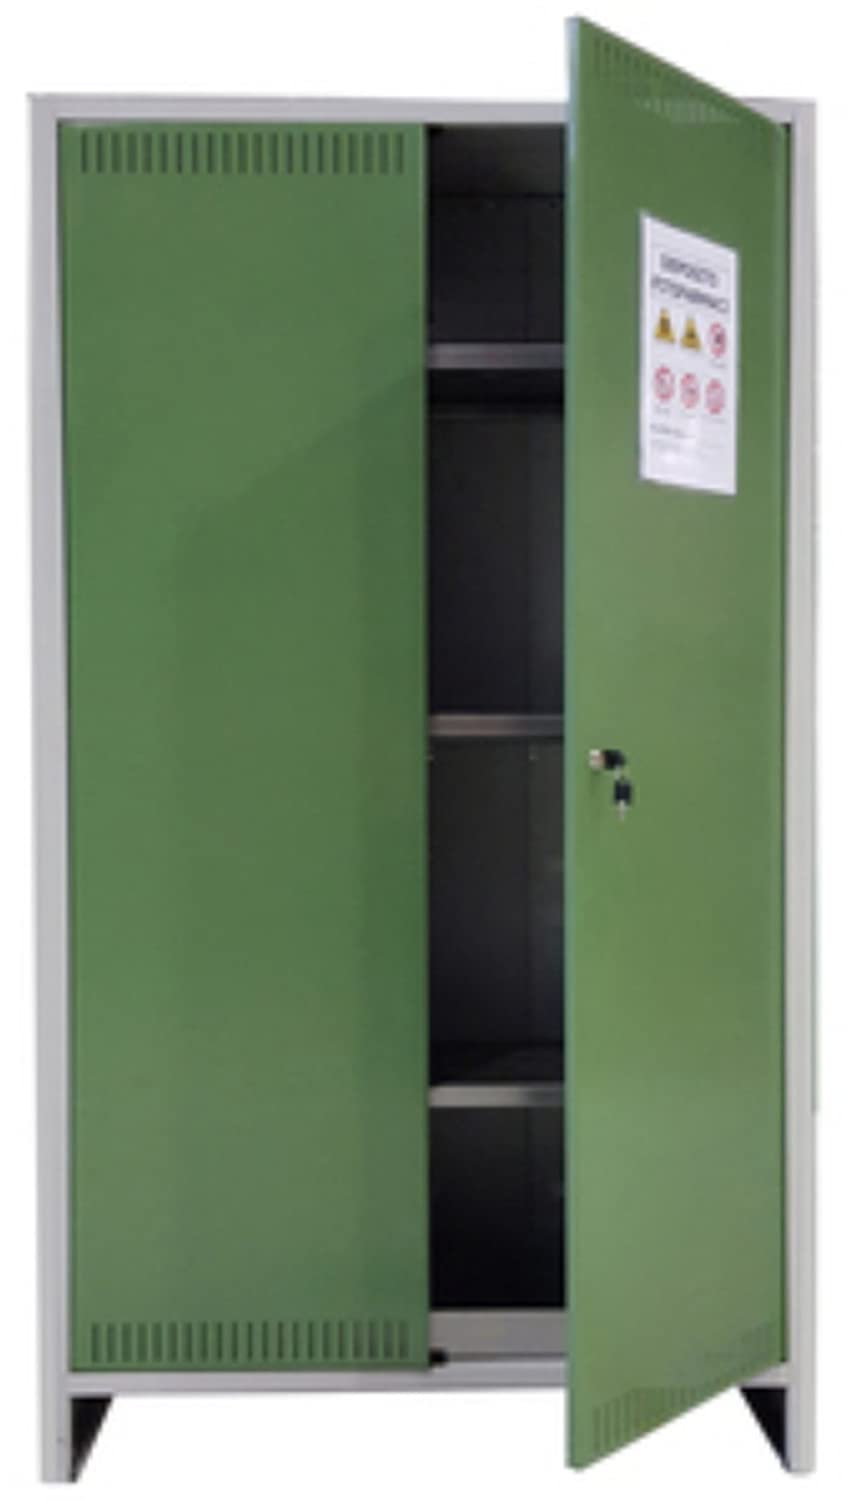 phytopharmaceuticals Pesticides Approved 1Door Cabinet 2Doors Various Sizes, 1A cm 50x40x179 h, 1